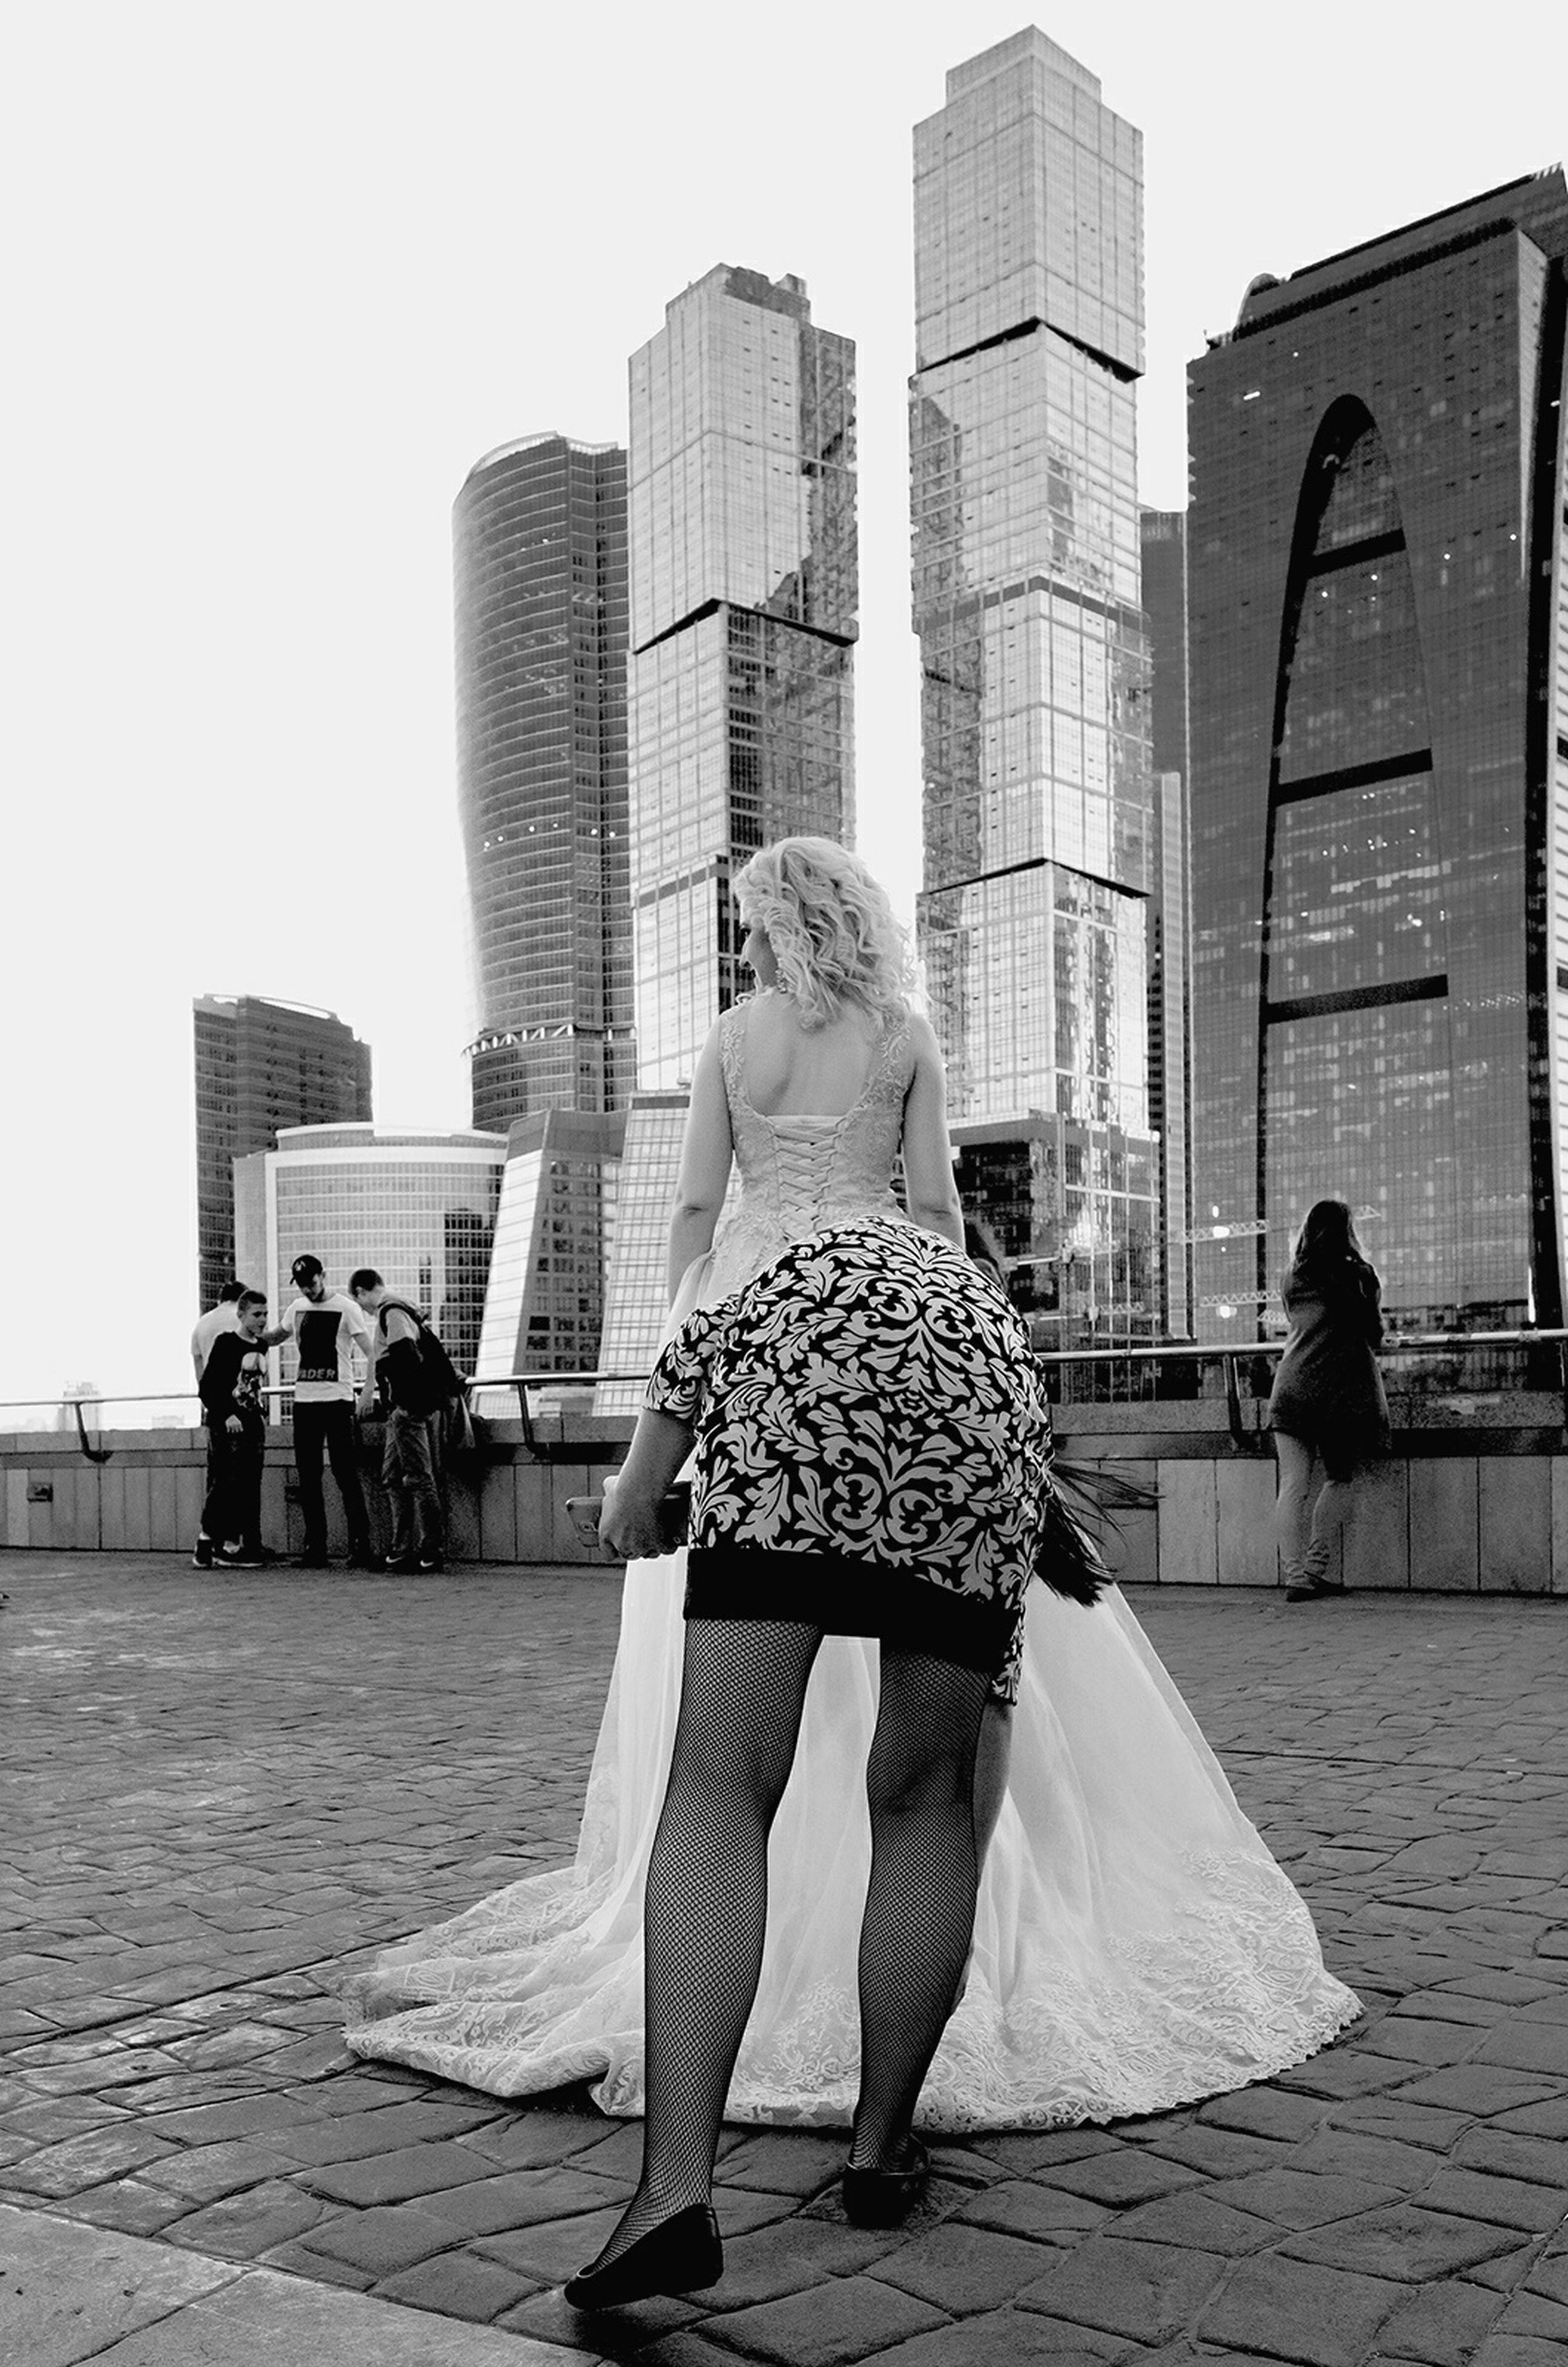 real people, built structure, building exterior, architecture, outdoors, leisure activity, women, lifestyles, fashion, rear view, day, city, full length, clear sky, large group of people, modern, glamour, fashion show, fashion model, skyscraper, sky, people